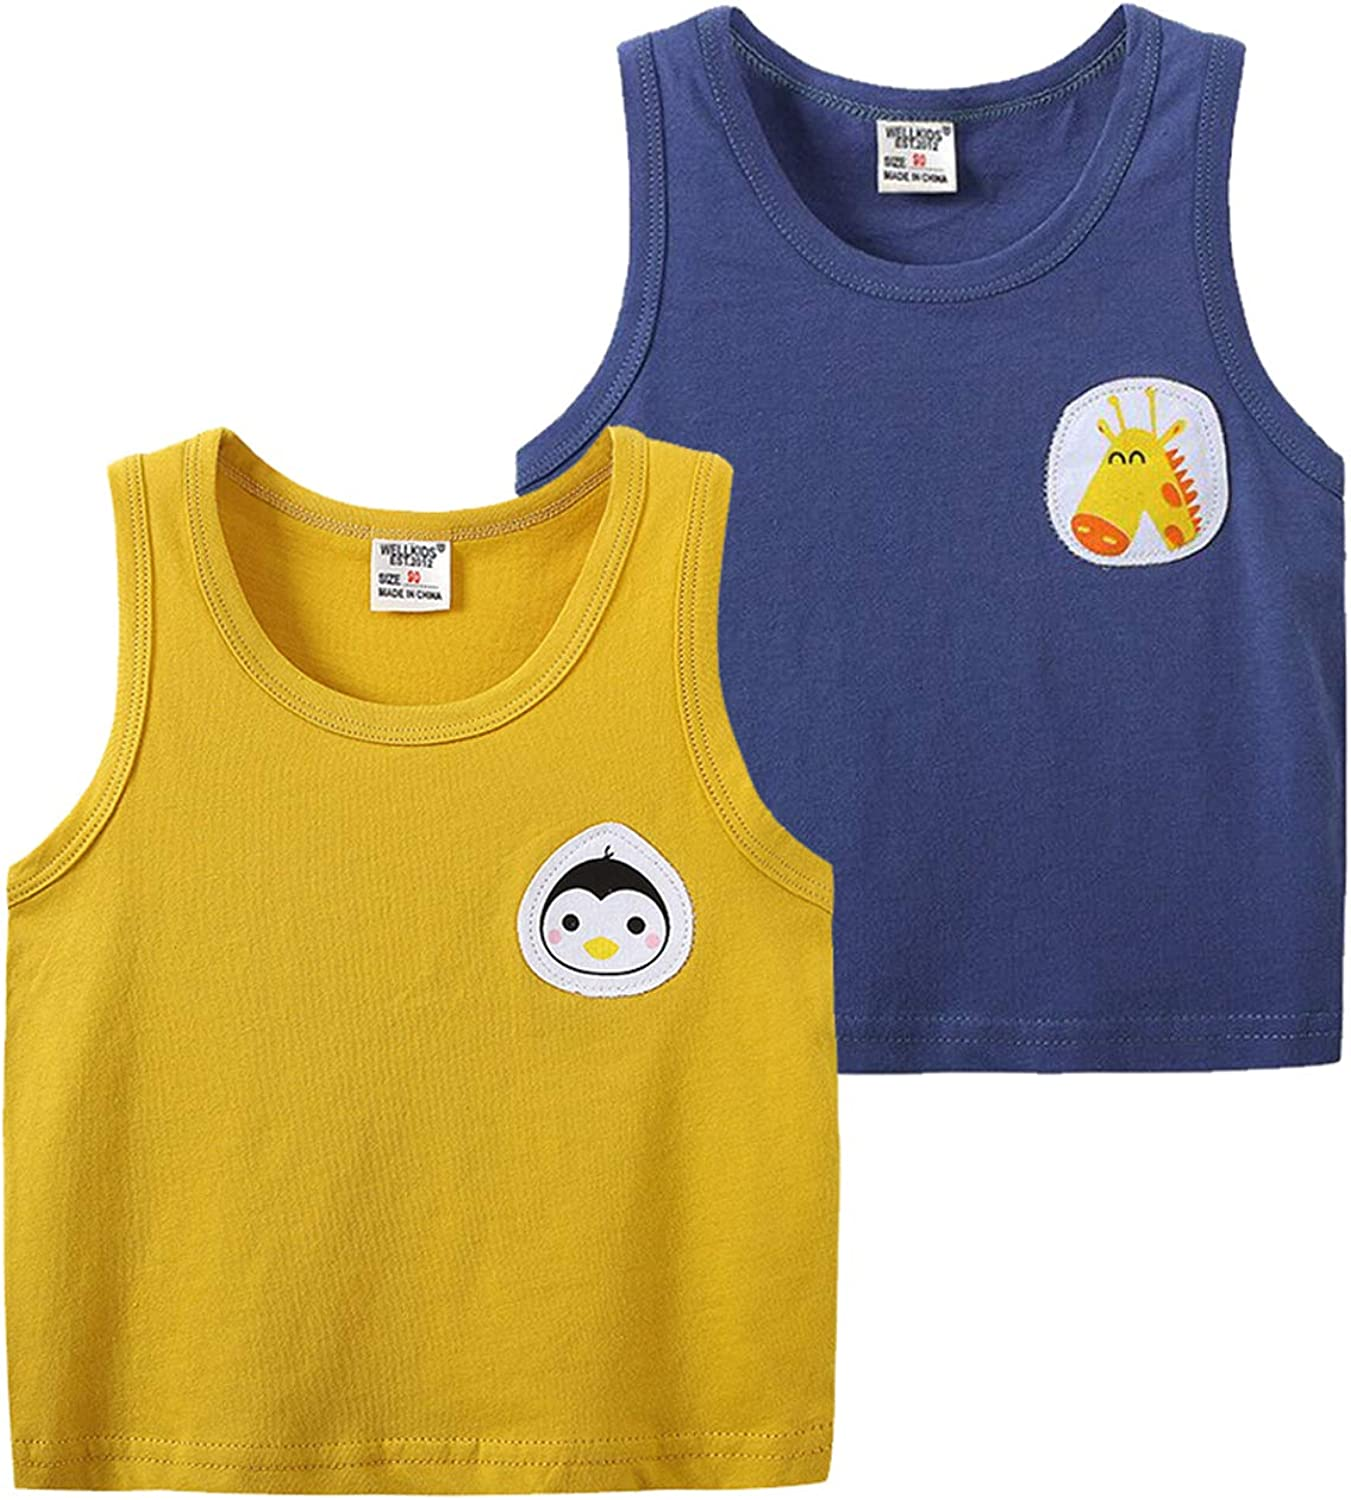 Huaer Toddler Boys' 2-3 Pack Tank Tops (Blue+Yellow, 2T)